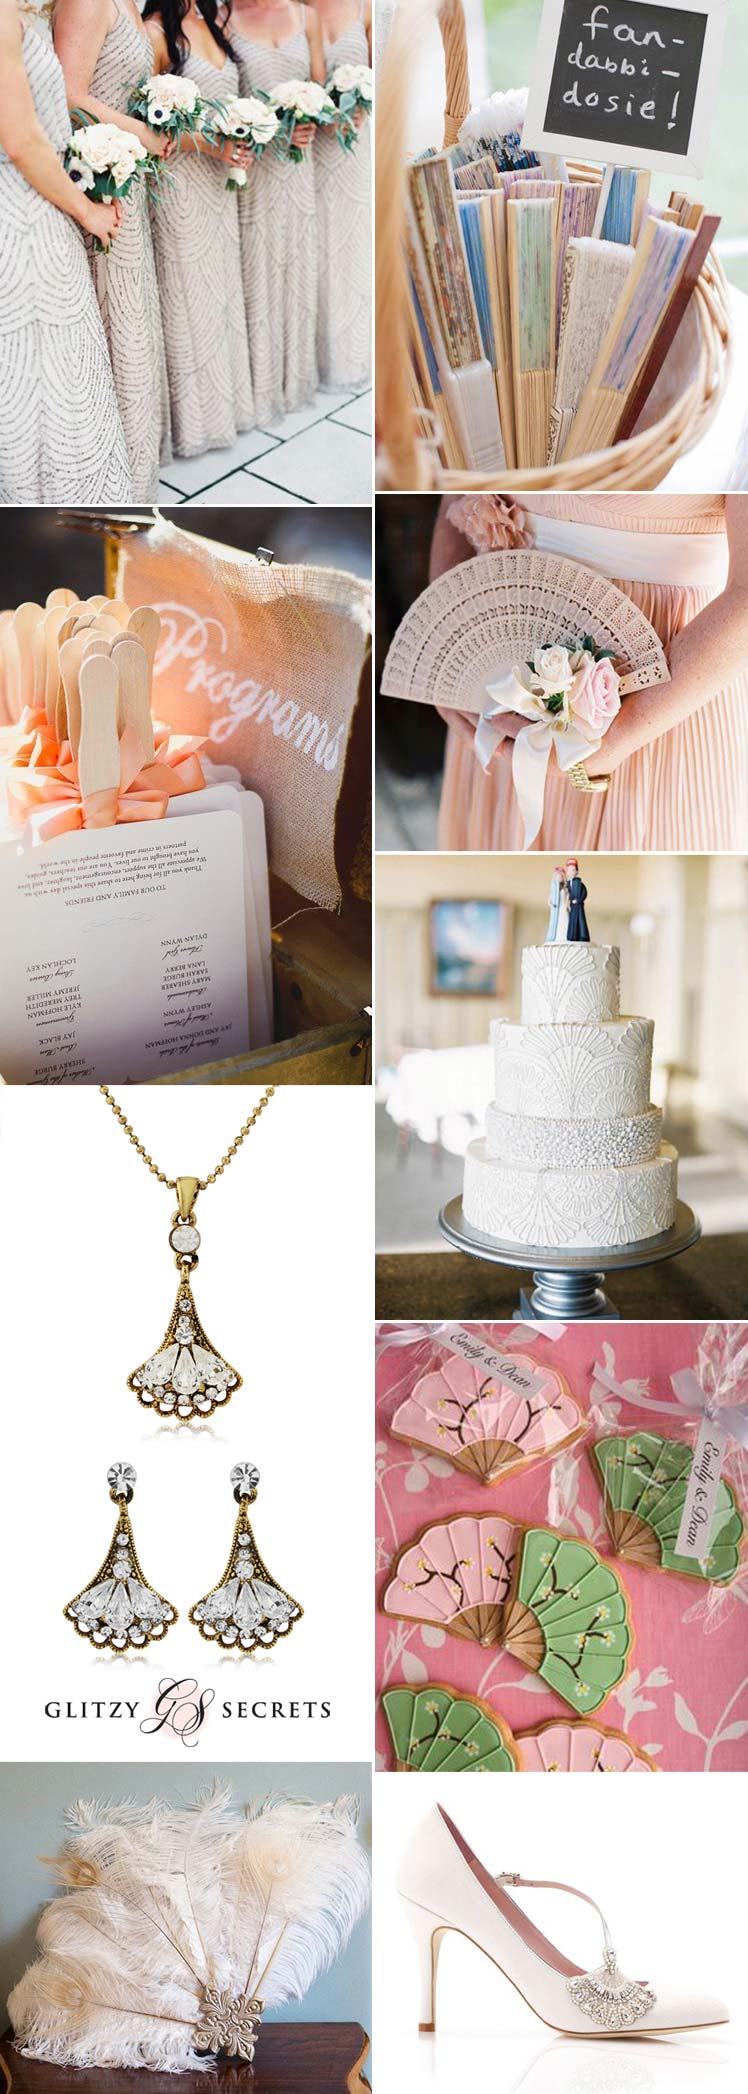 beautiful ideas to include fans in your wedding ideas